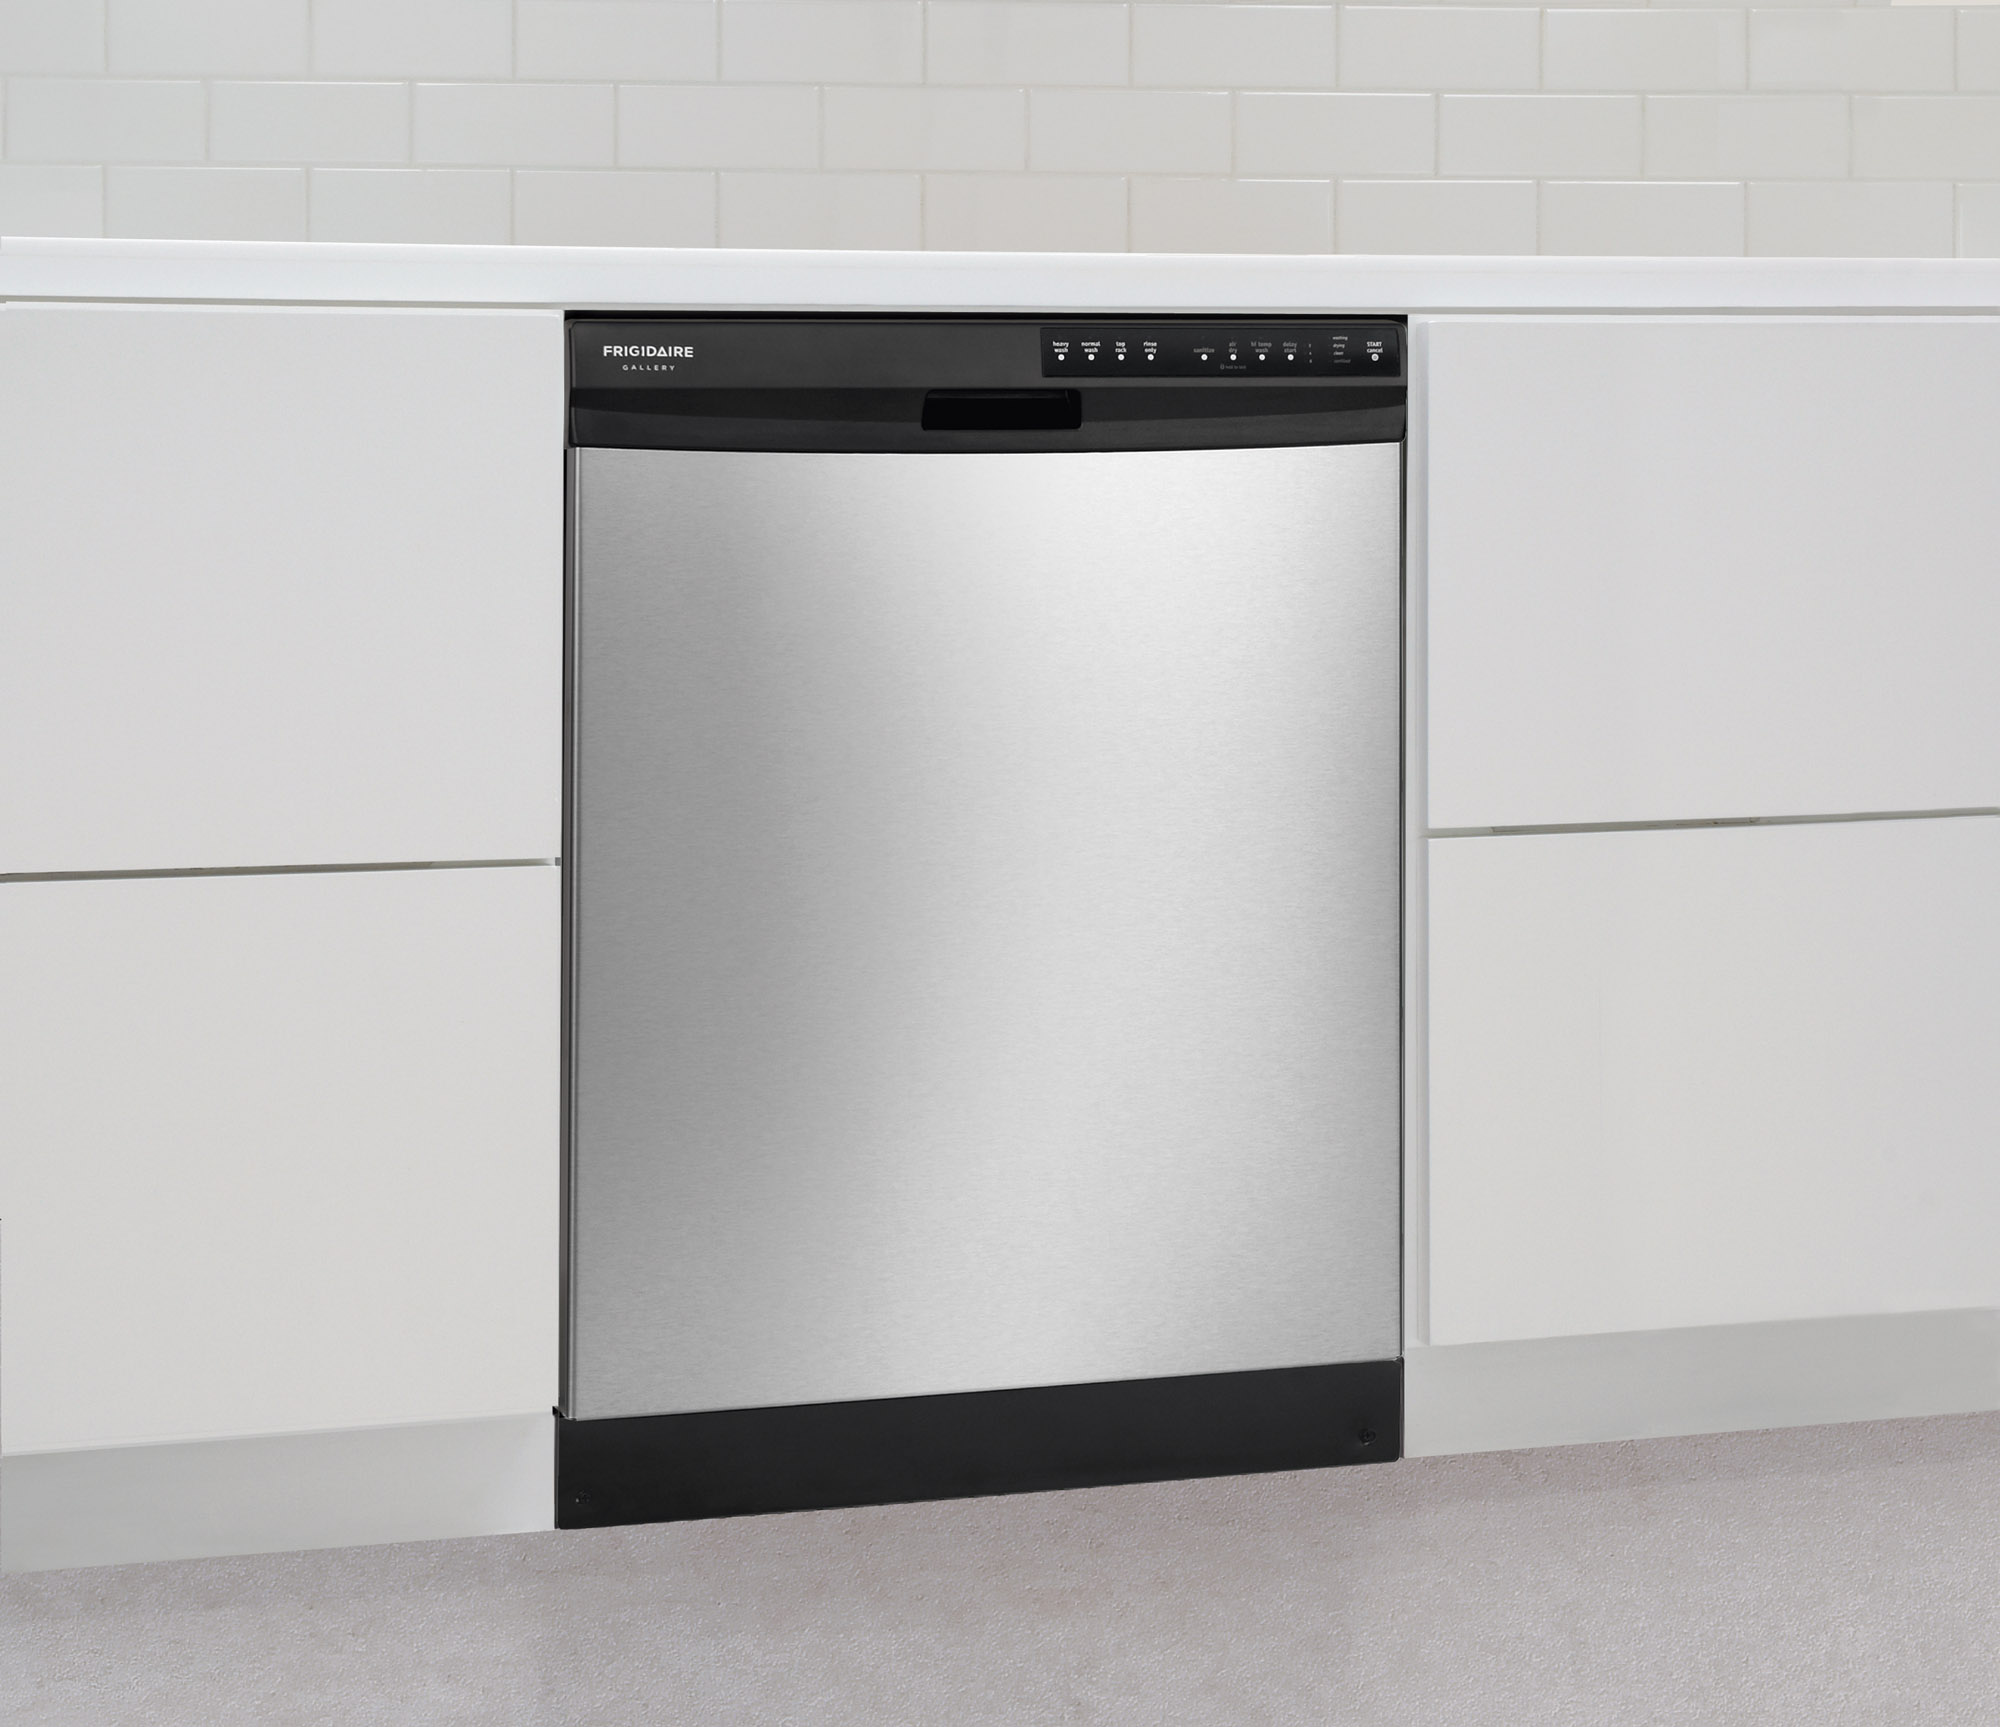 "Frigidaire Gallery FGBD2434PF Gallery 24"" Built-In Dishwasher w/ Nylon Racks - Stainless Steel"